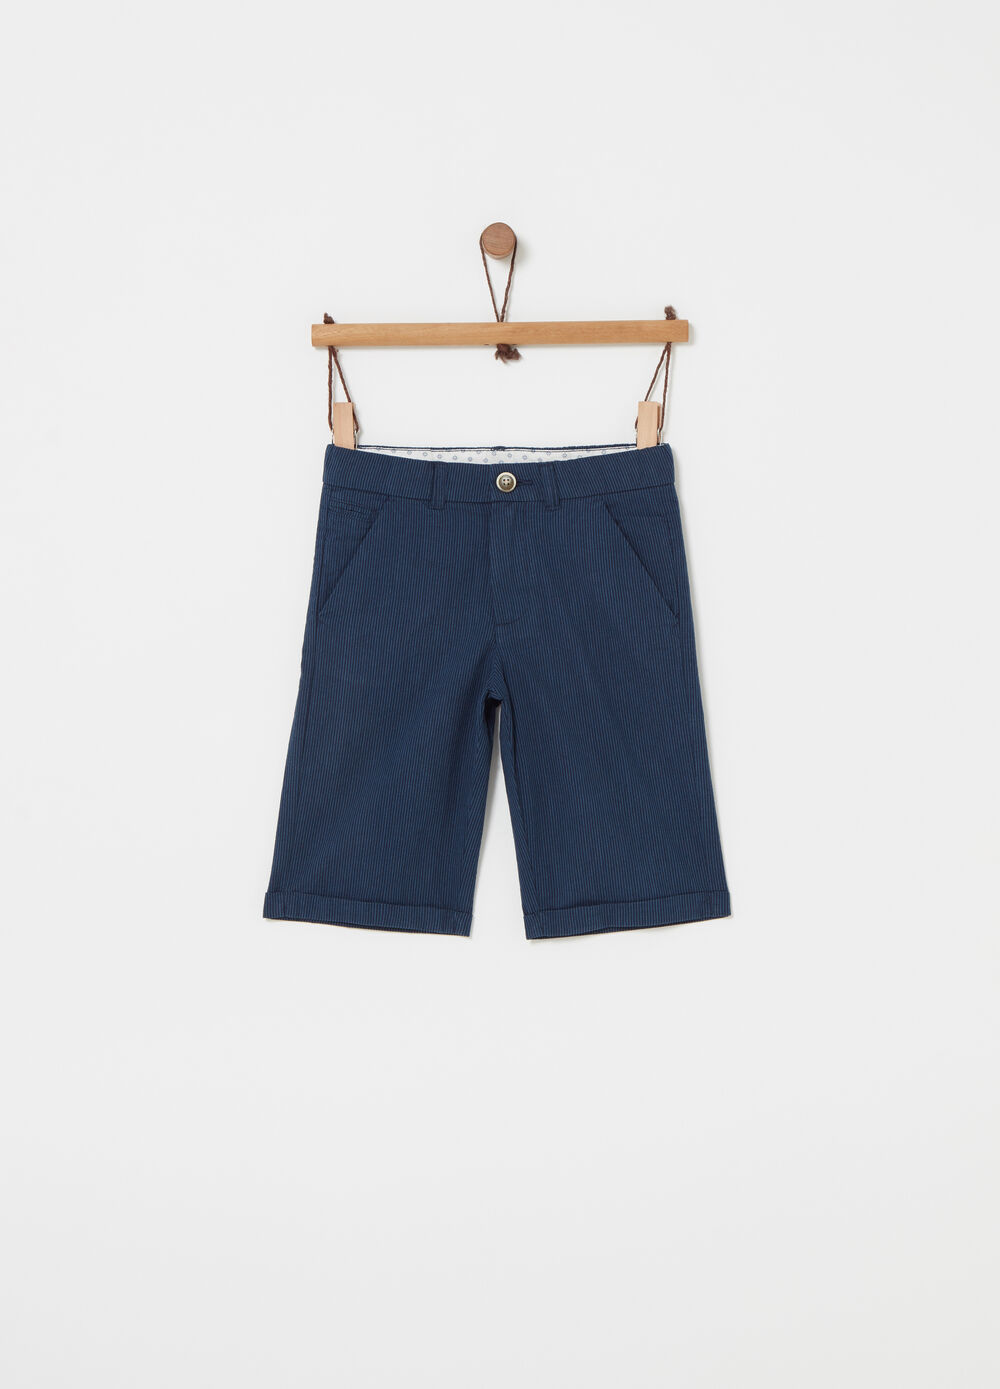 Smart-model shorts with striped pockets